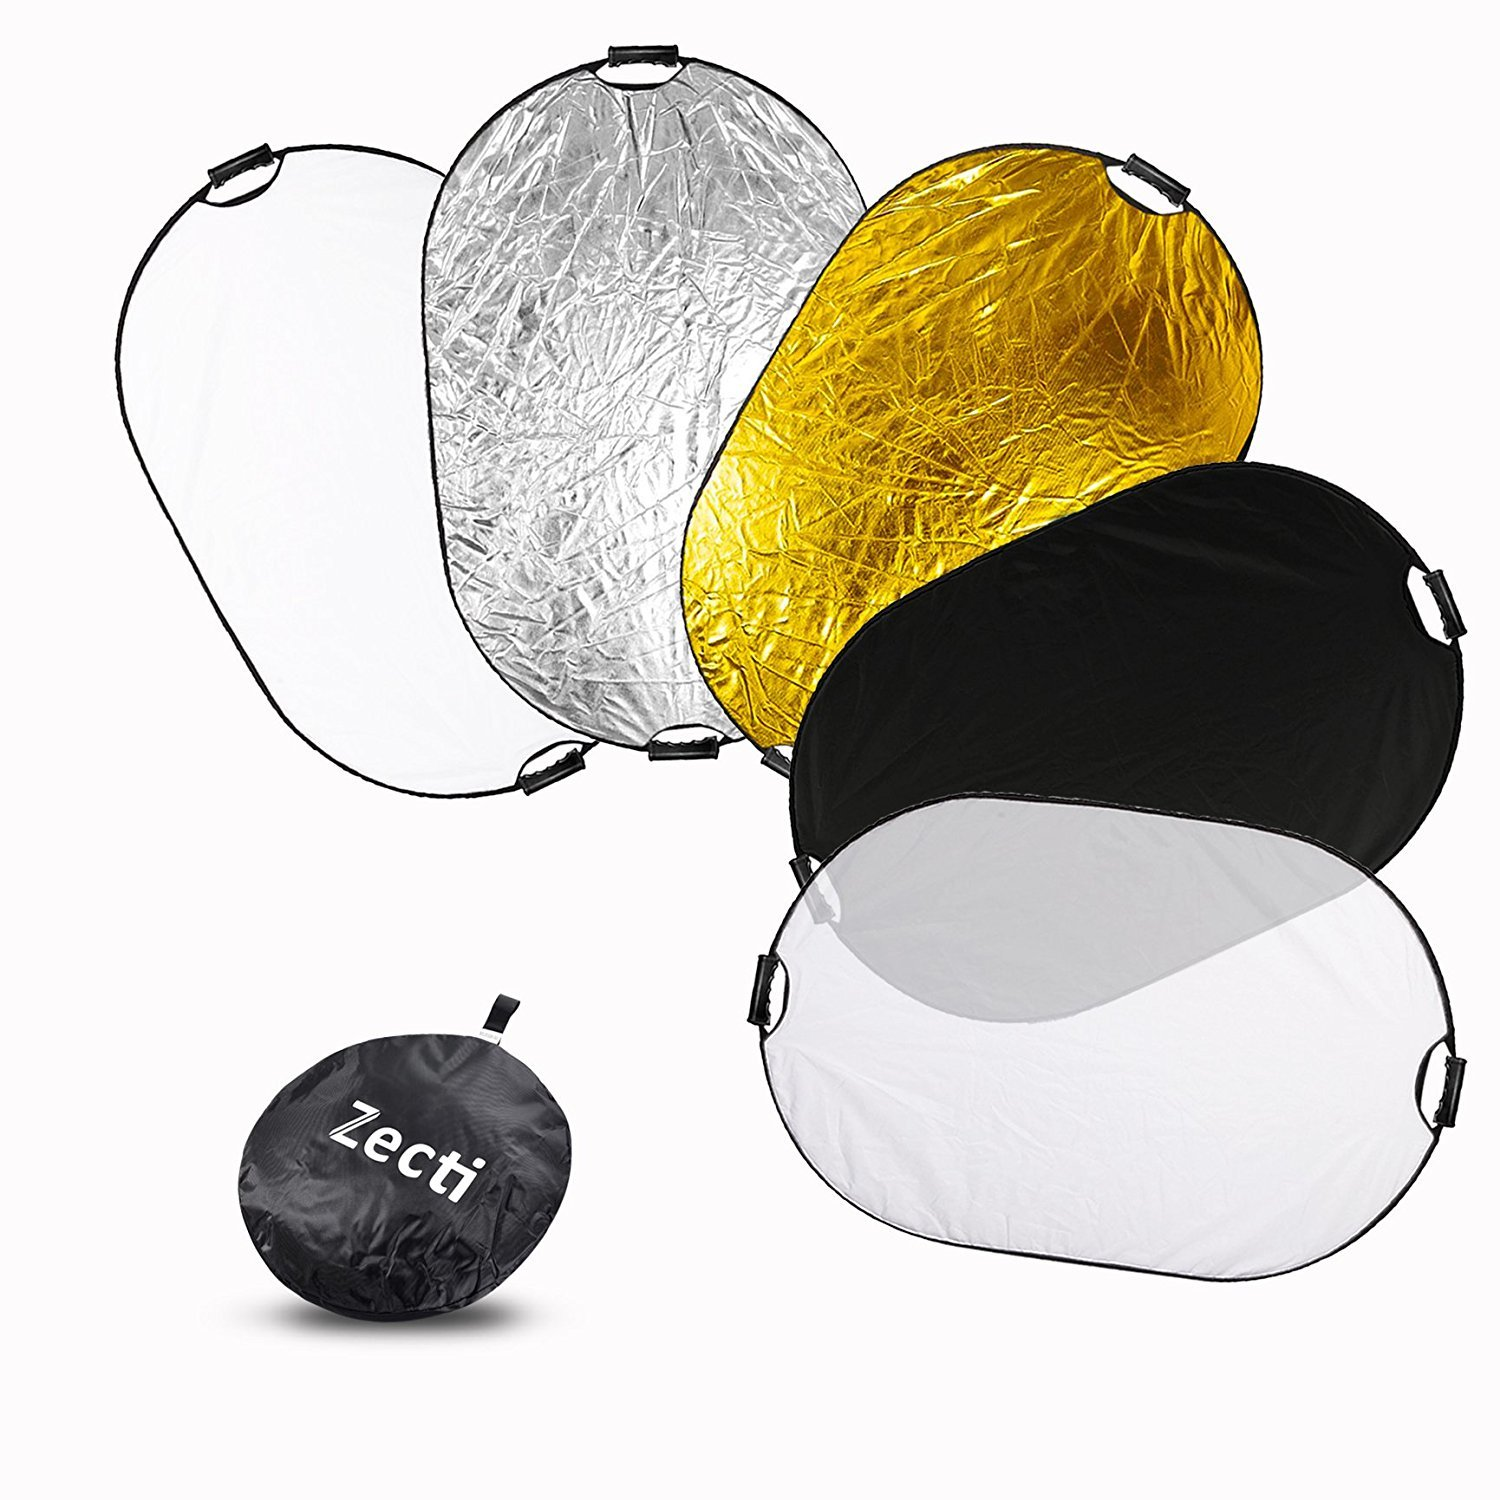 Zecti 5 in 1 Portable Collapsible Multi-Disc Photography Light Reflector, Photo Reflector for Studio/Outdoor Lighting with Bag 40'' x 59'' by Zecti